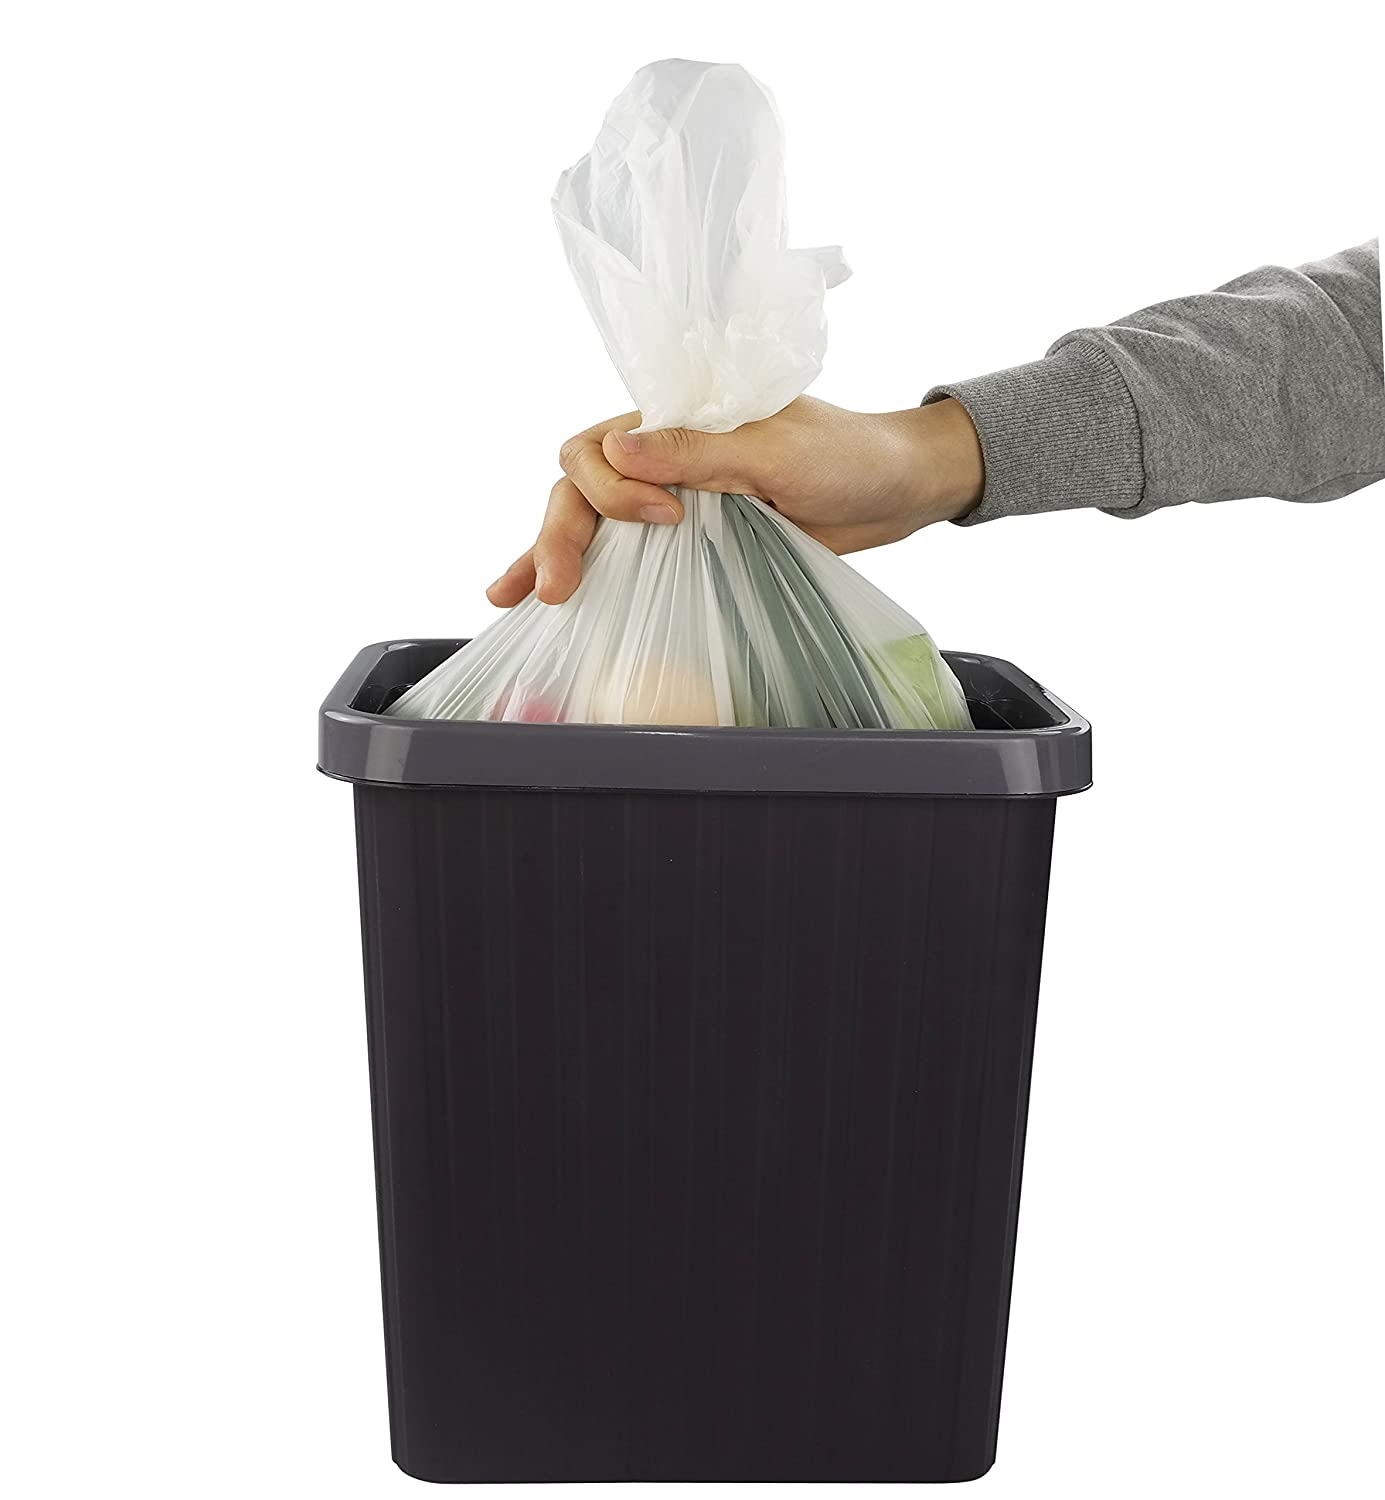 F 100/% Certified Biodegradable Compost Bags Morcte White 10 Gallon Compostable Trash Bags 100 Counts